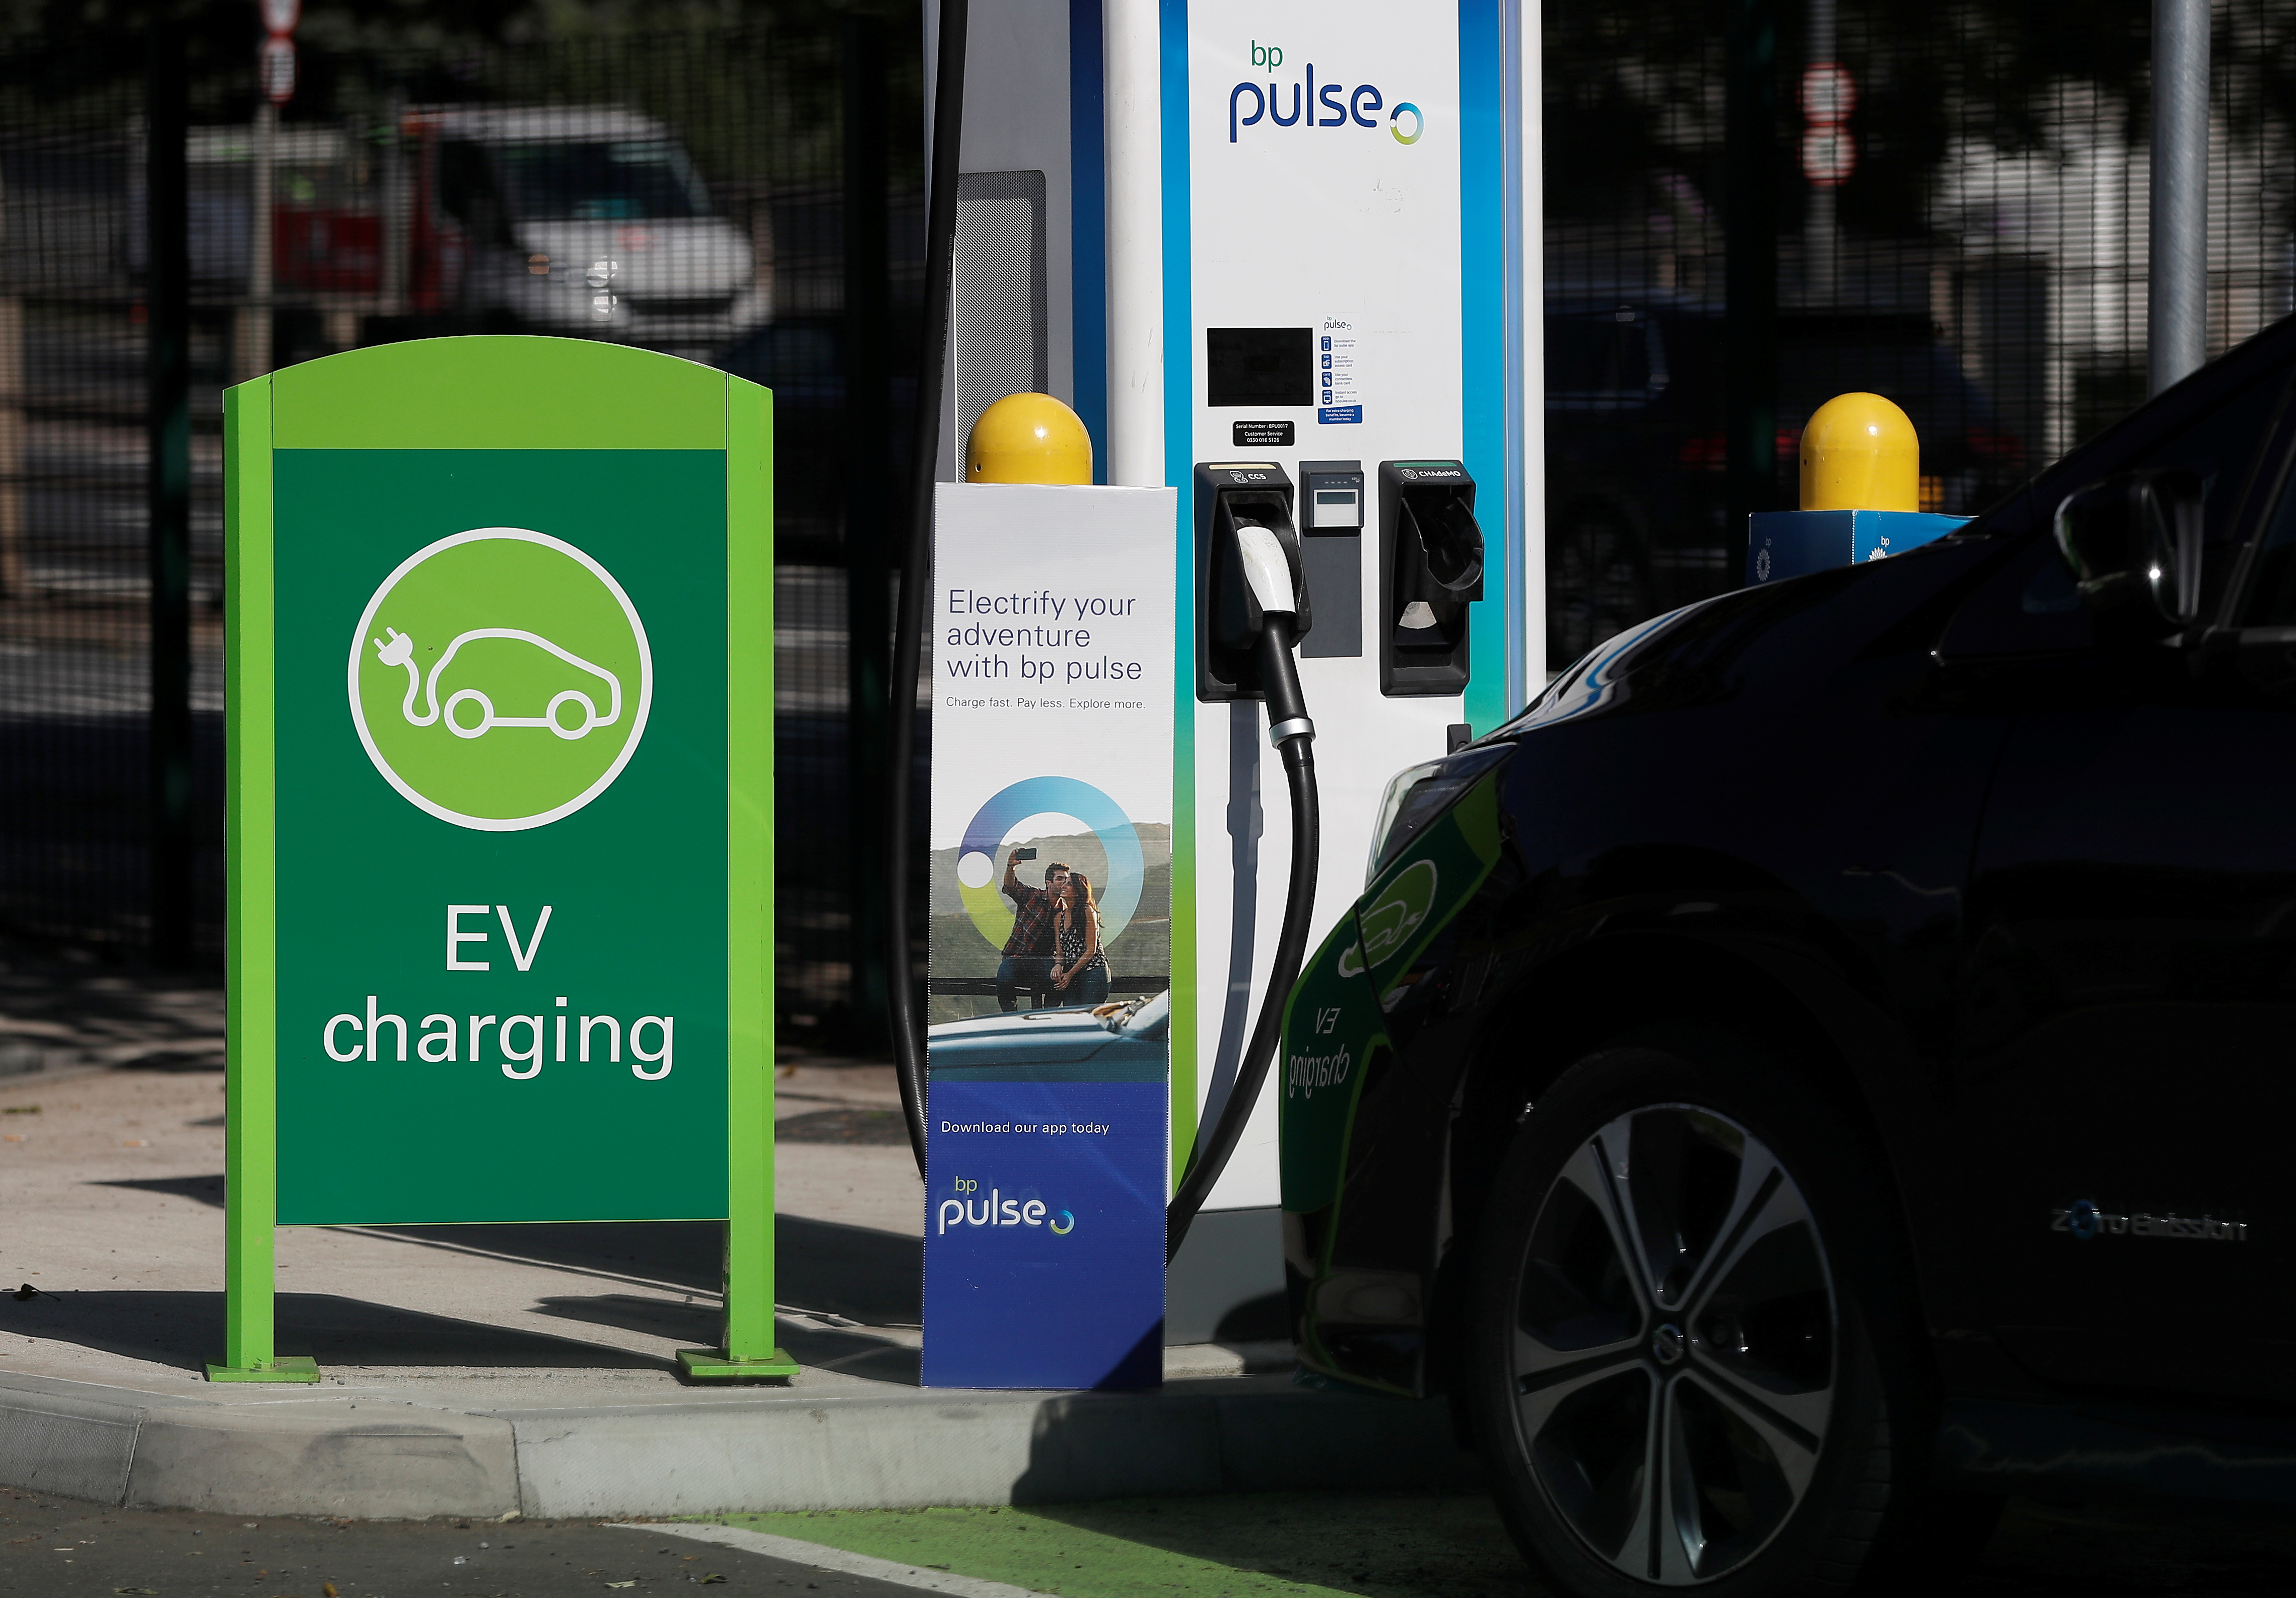 A BP Pulse electric vehicle charging point is seen in London, Britain, July 16, 2021.  REUTERS/Peter Nicholls